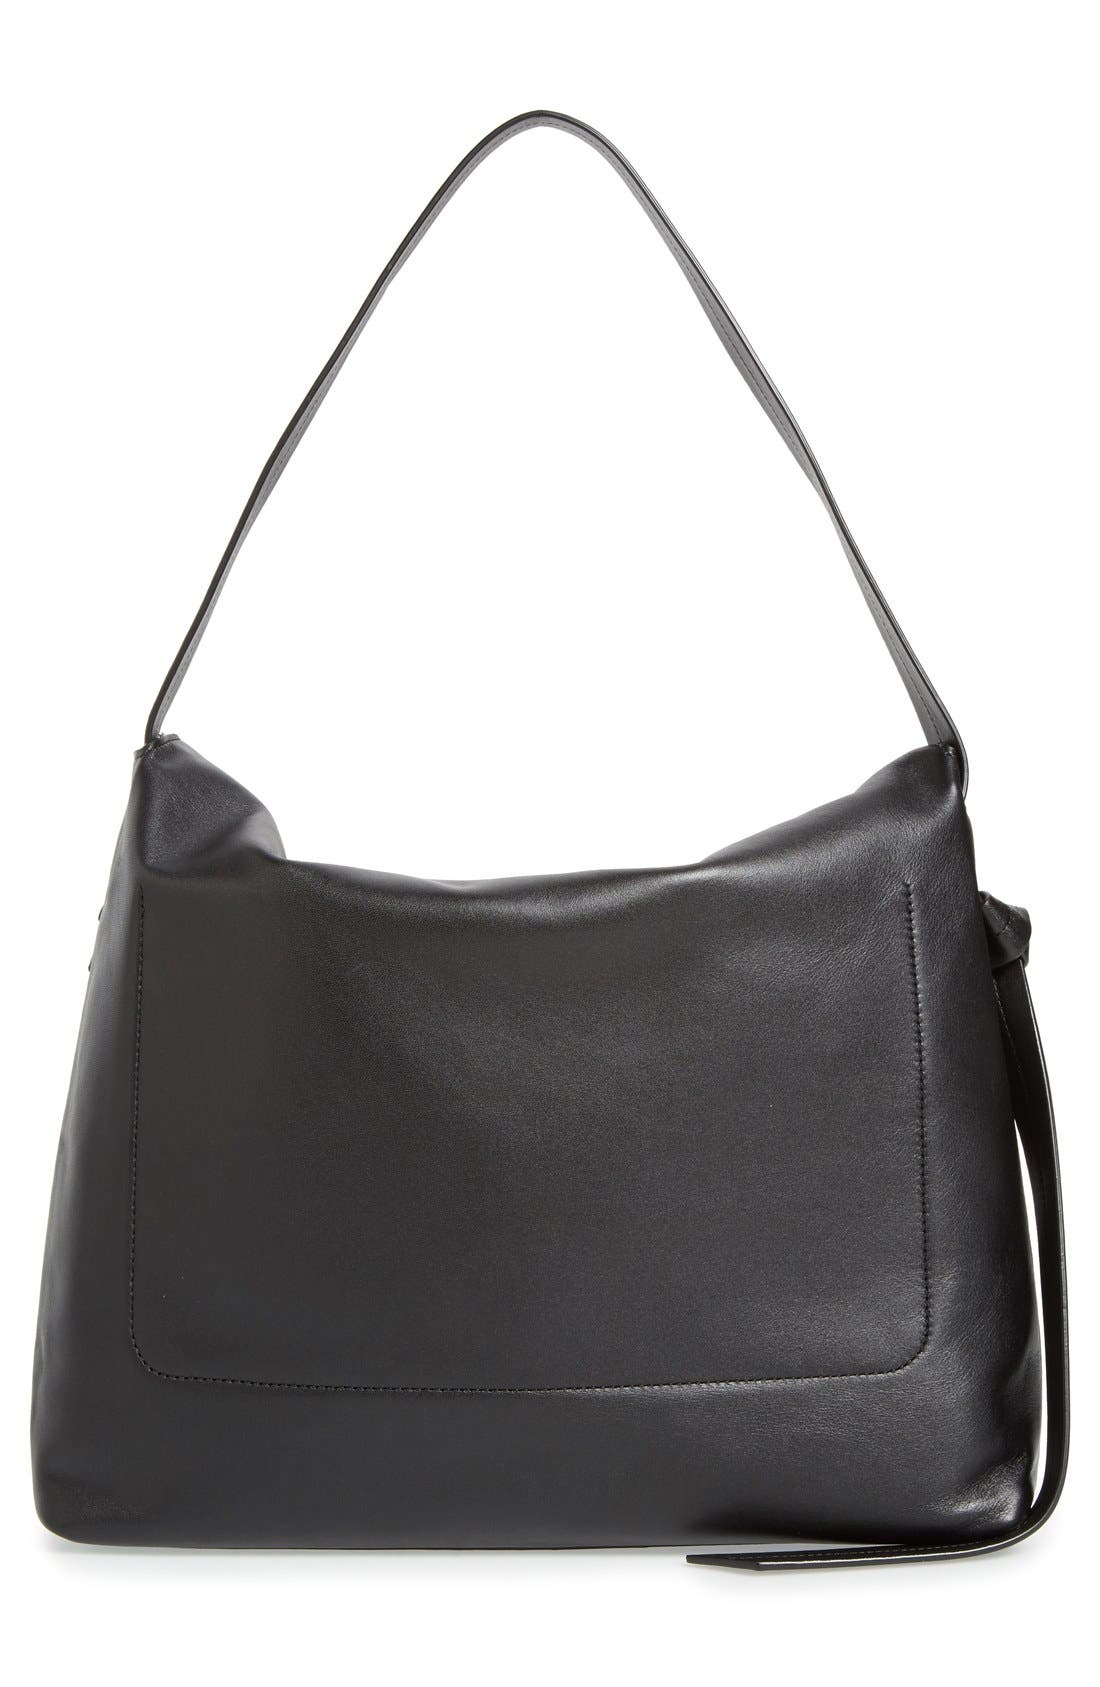 'Large Lafayette' Leather Shoulder Bag,                             Alternate thumbnail 2, color,                             001